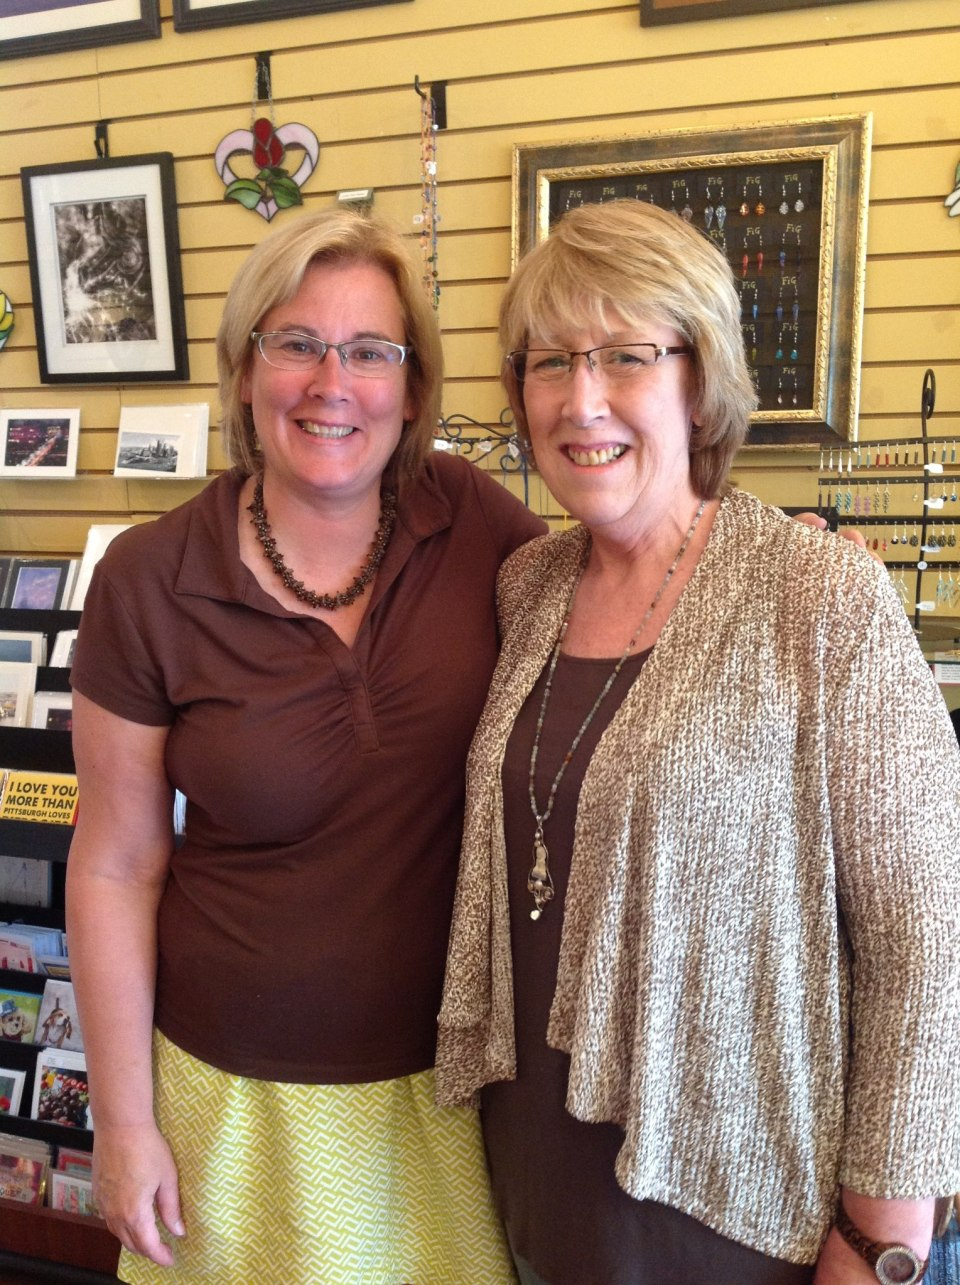 Koolkat owner, Kate McGrady with Sewickley-based jewelry artist, Judi Erno of Urban Baroque